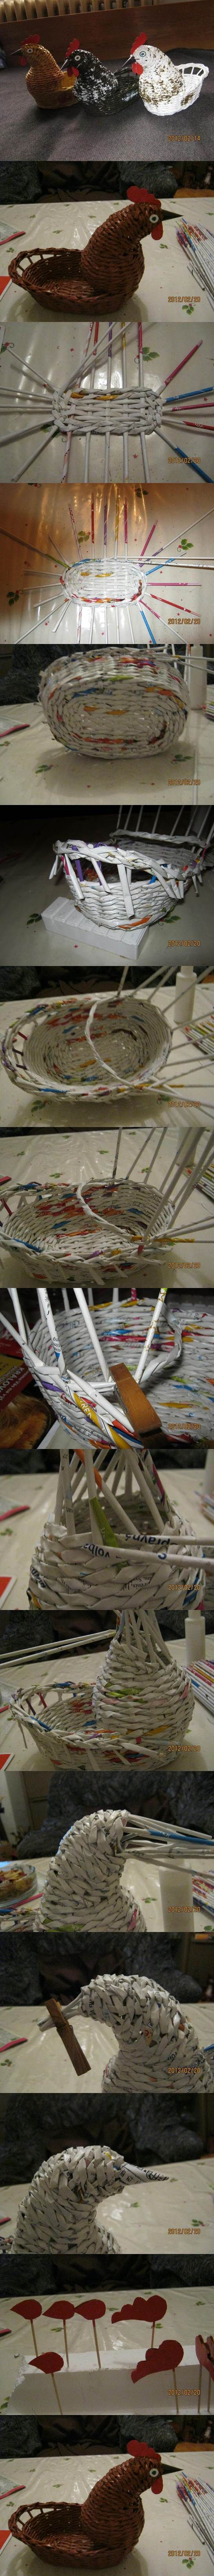 DIY Woven Paper Chicken Easter Basket | iCreativeIdeas.com Like Us on Facebook ==> https://www.facebook.com/icreativeideas